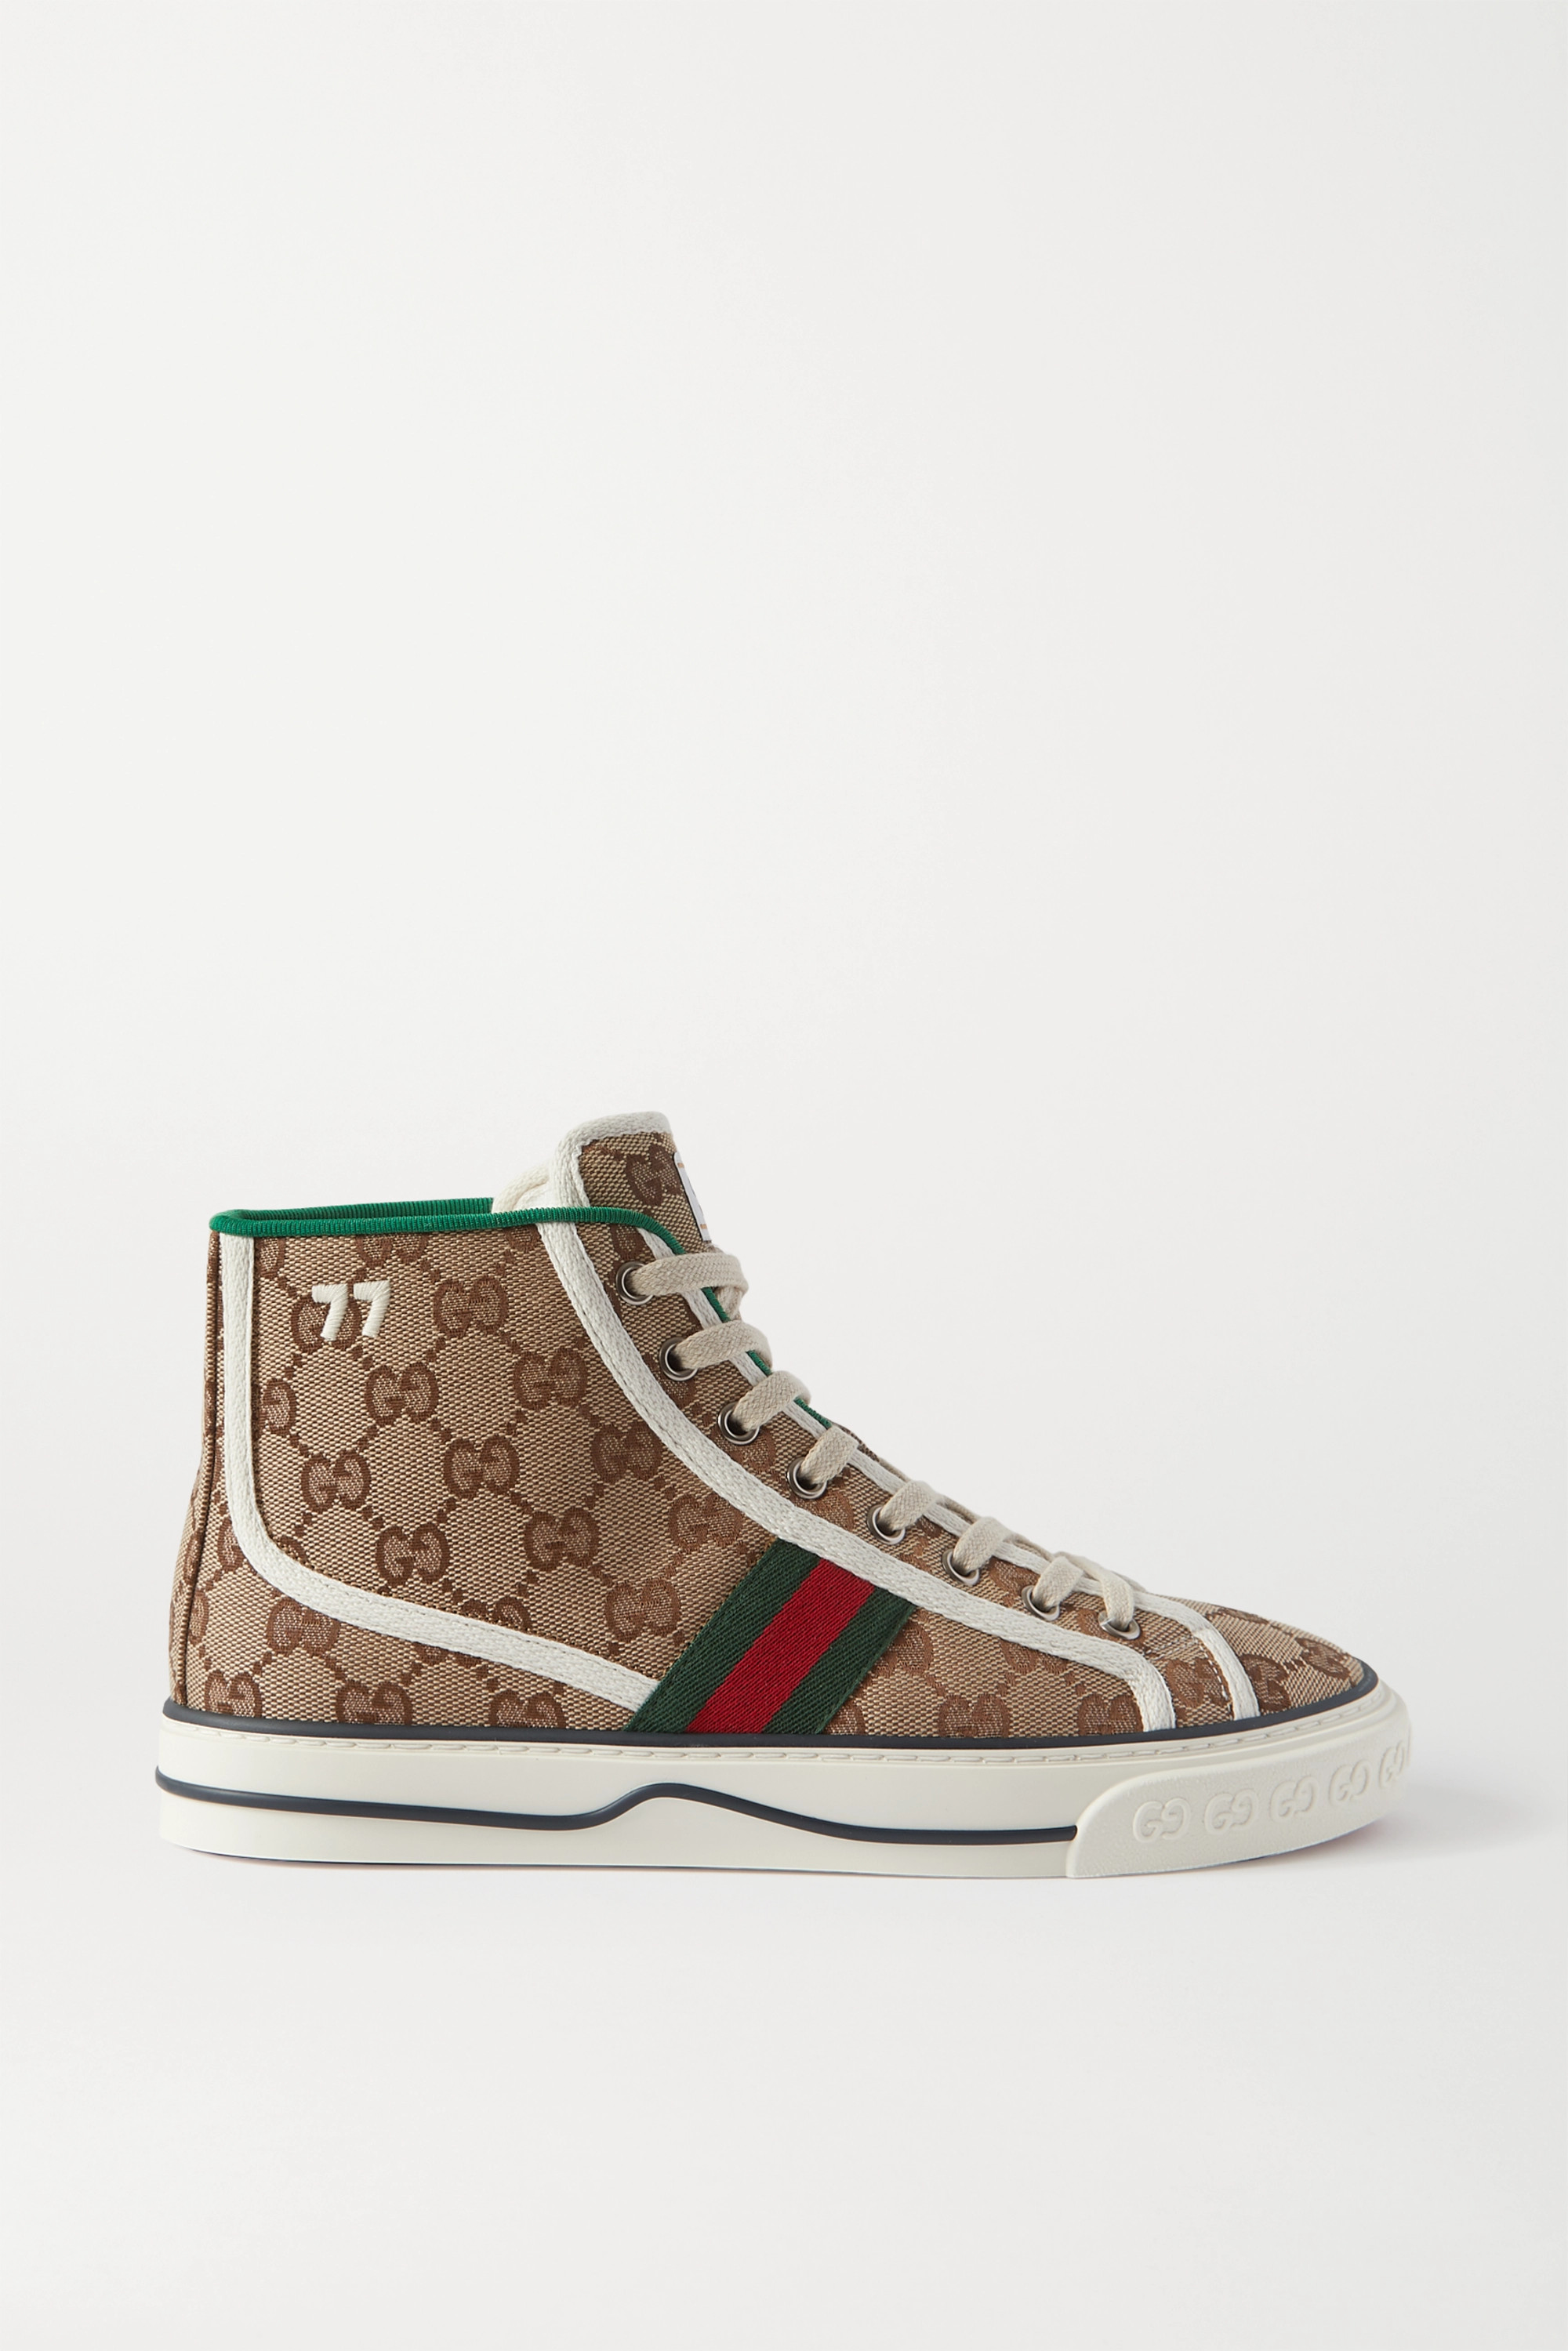 Gucci Tennis 1977 logo-embroidered printed canvas high-top sneakers